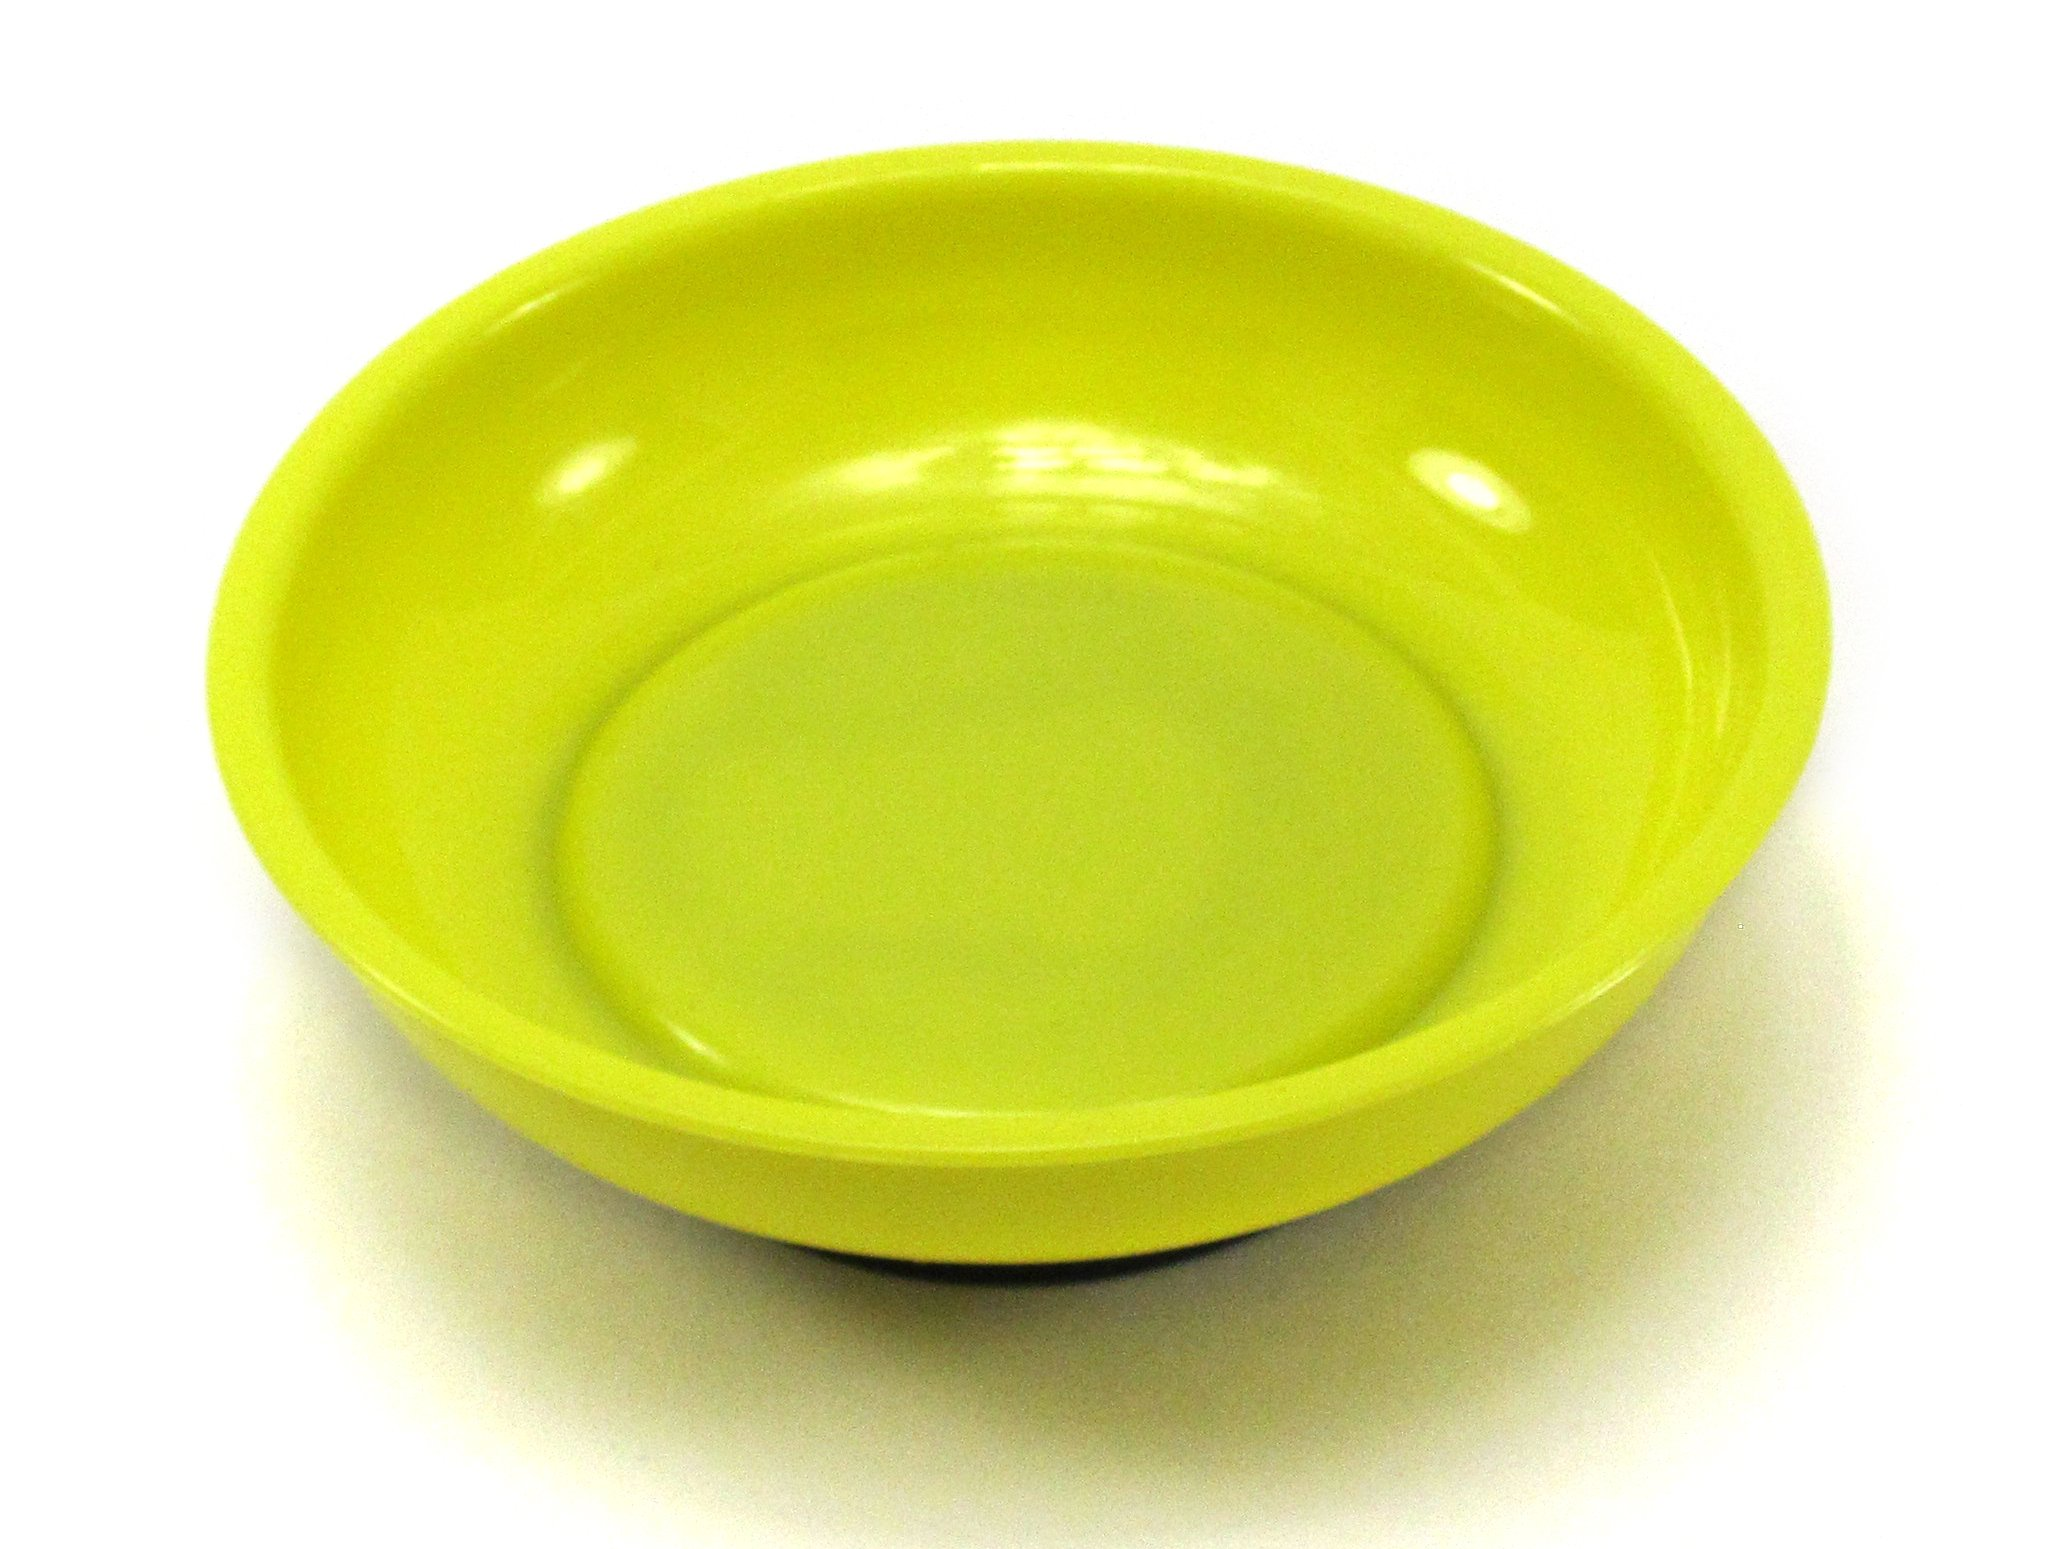 Elitexion Mechanic Workshop Magnetic Bowl Tray 4-inch (Pack of 4) by Elitexion (Image #4)